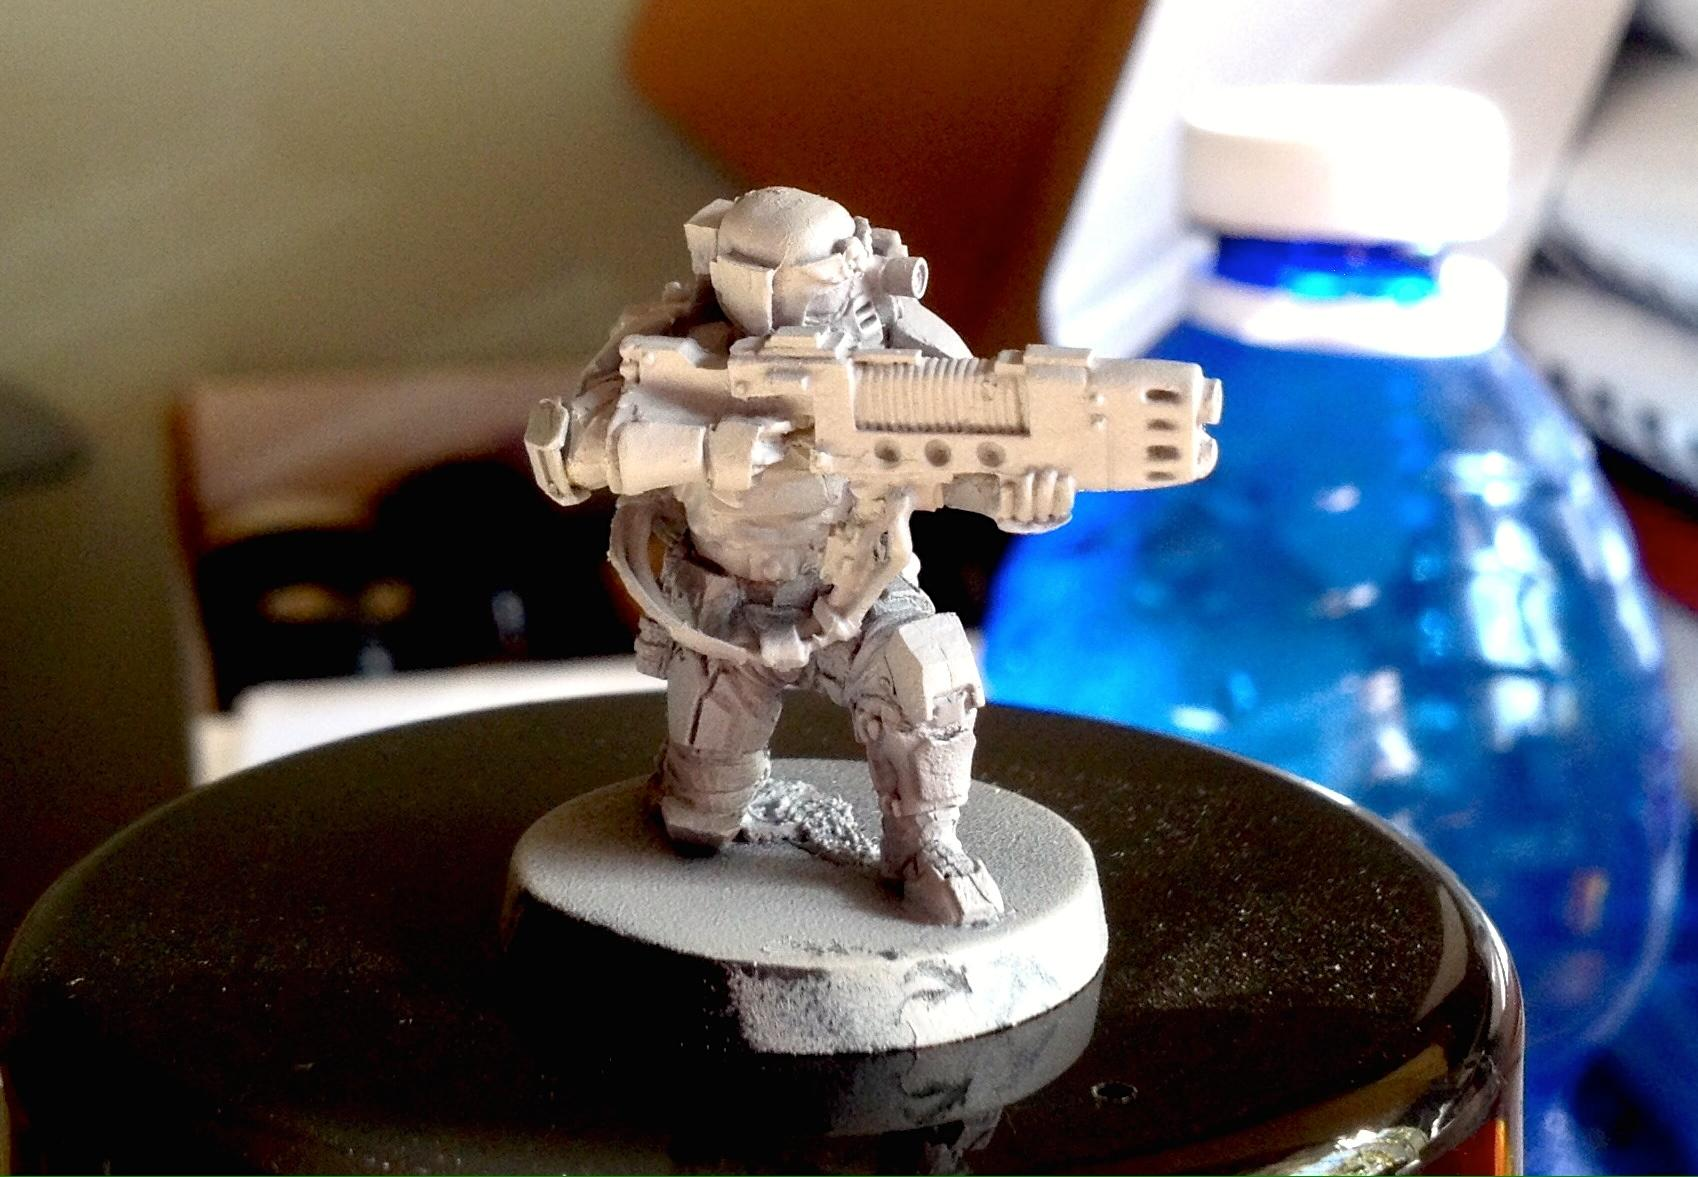 Anvil Industry, Astra Militarum, Cadians, Commando, Conversion, Forge World, Hostile Environment, Imperial Guard, Plasma Gun, Respirators, Spec Ops, Special Forces, Special Operations, Storm Troopers, Veteran, Warhammer 40,000